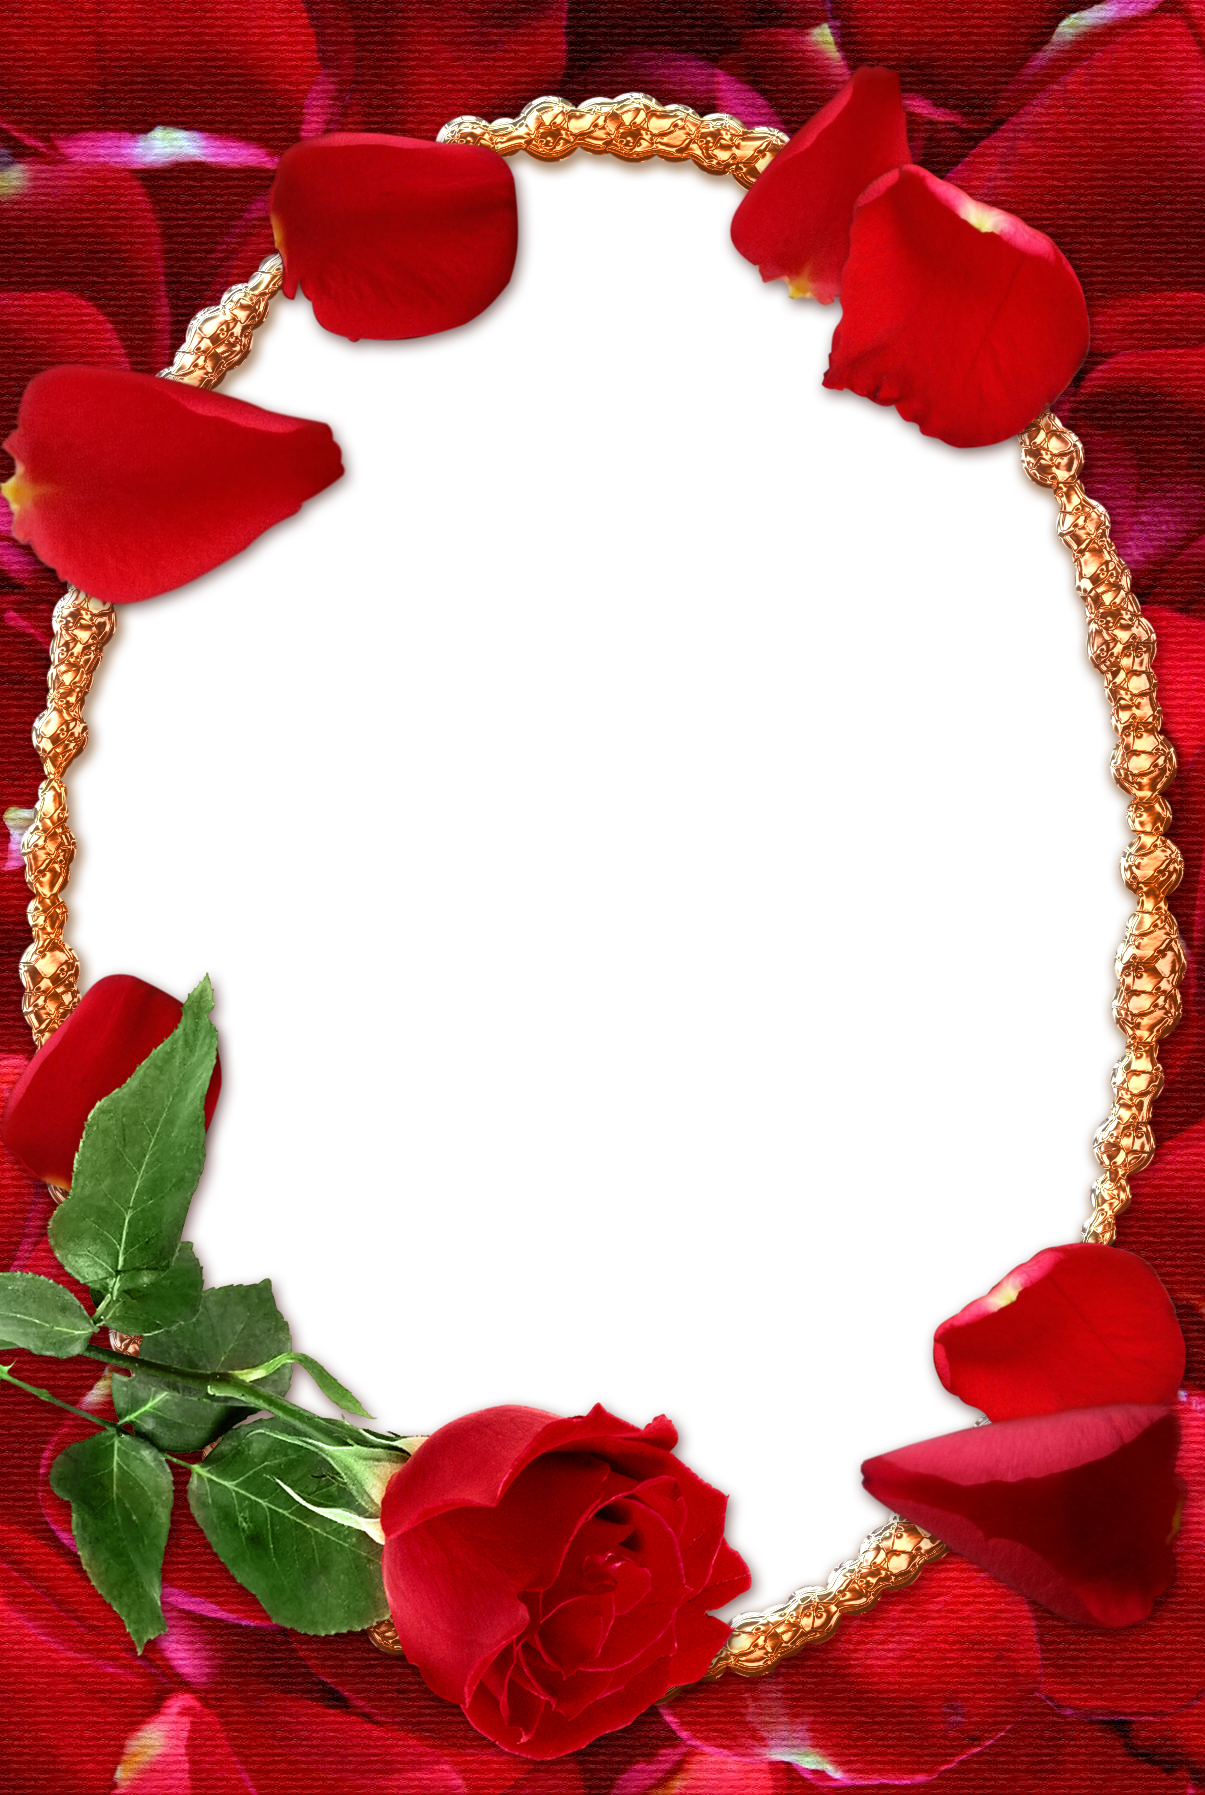 Download Rose Photo Frame Png Png Image With No Background Pngkey Com